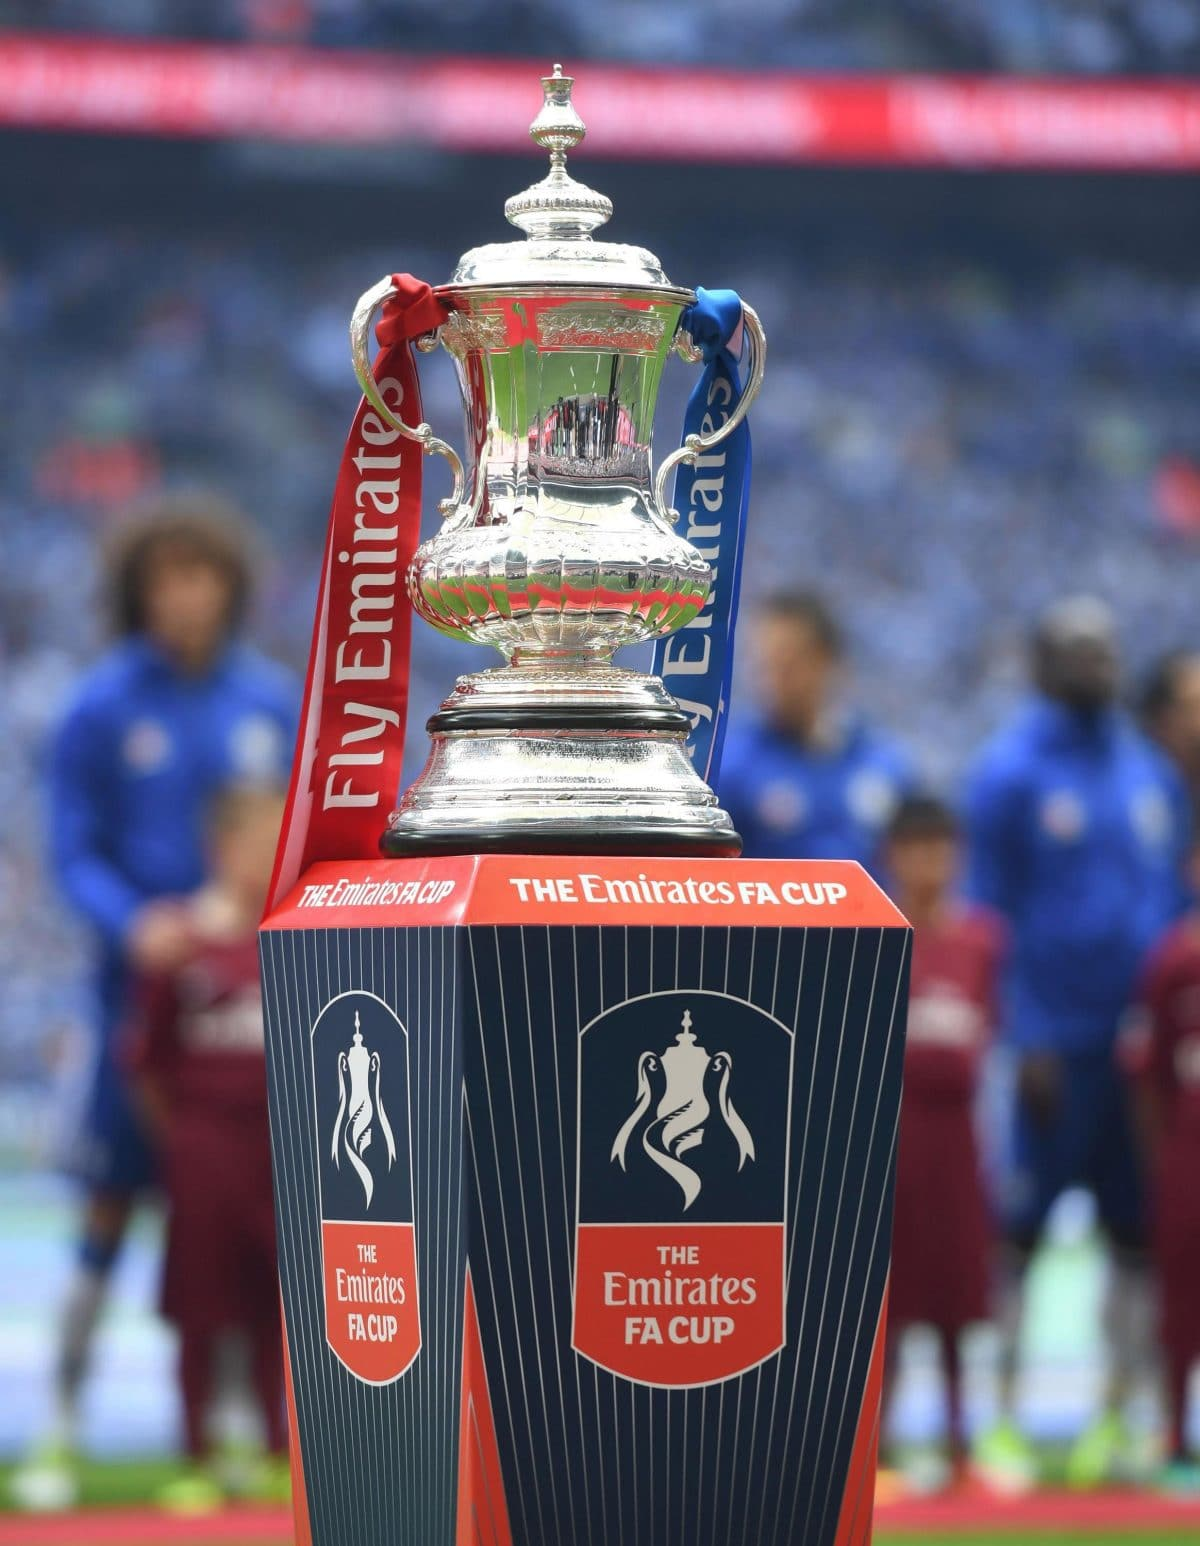 FA Cup first round draw completed Full fixtures » ThinkNews